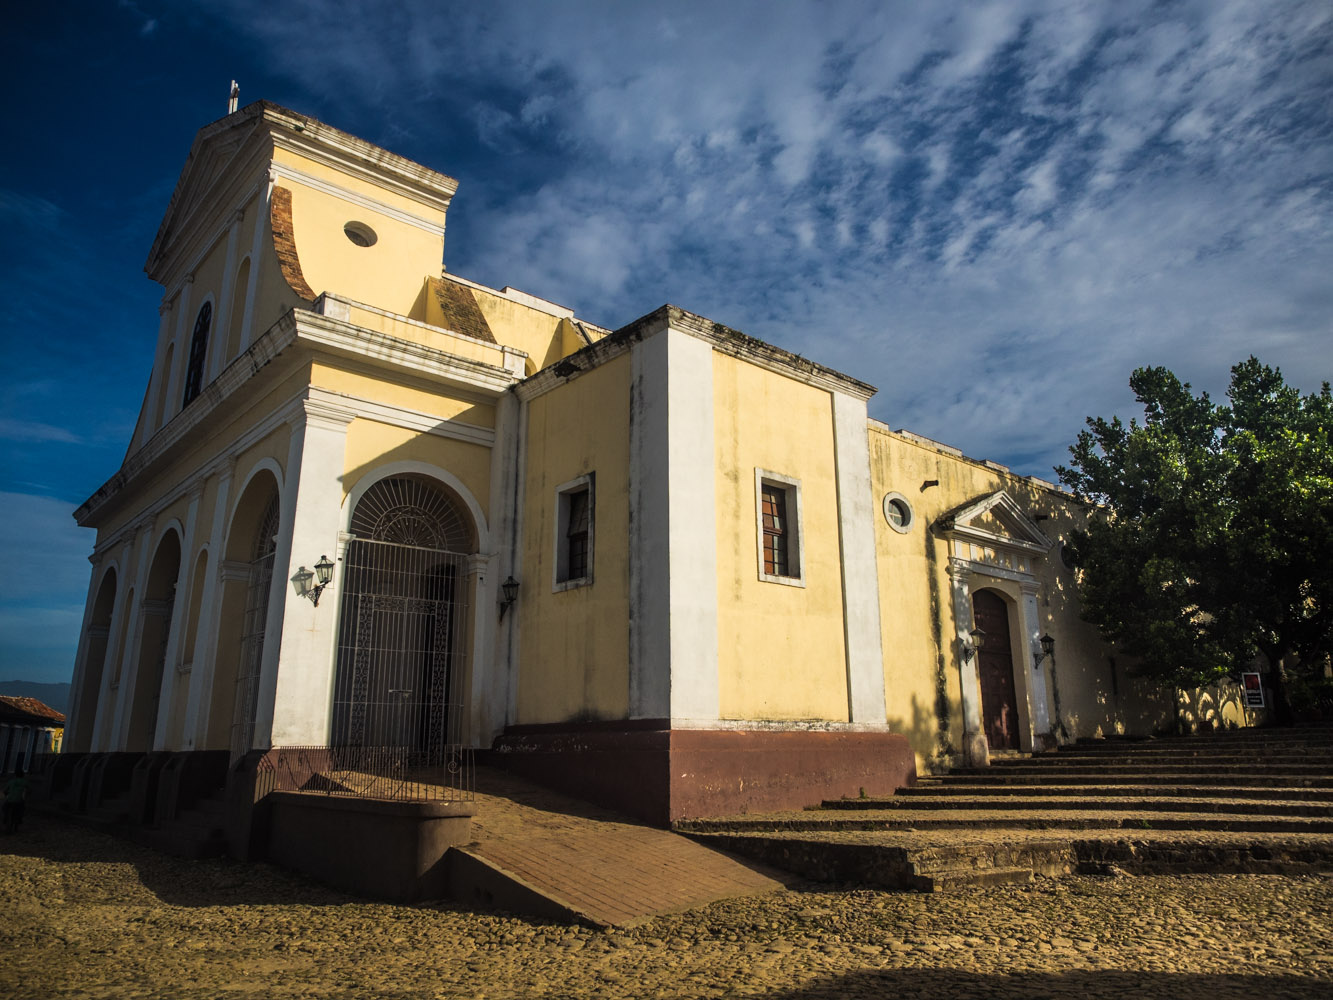 The Holy Trinity Church in the heart of Trinidad.